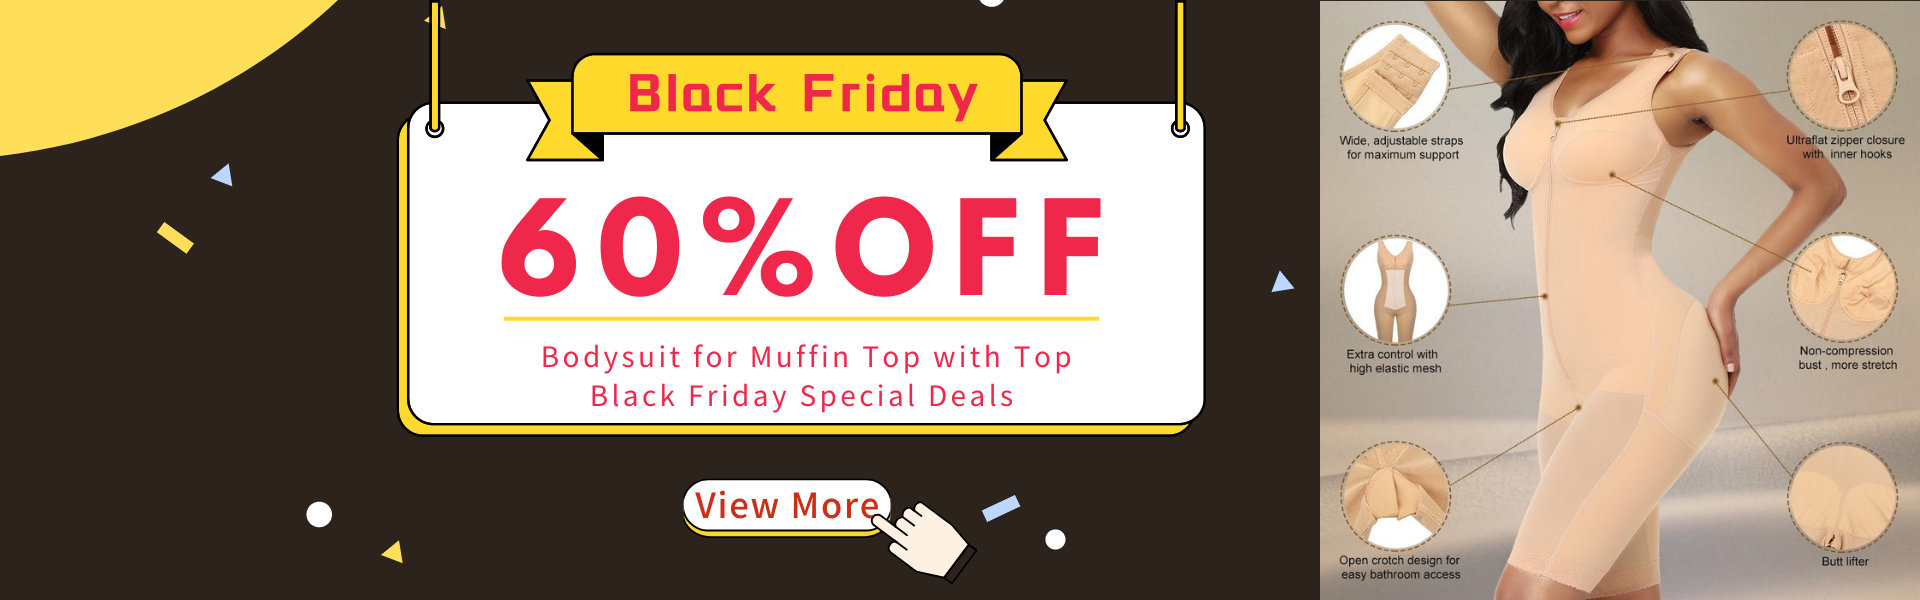 Are You Looking for the Best Shapewear and Bodysuit for Muffin Top? Best Shapewear Online with Top Black Friday Special Deals